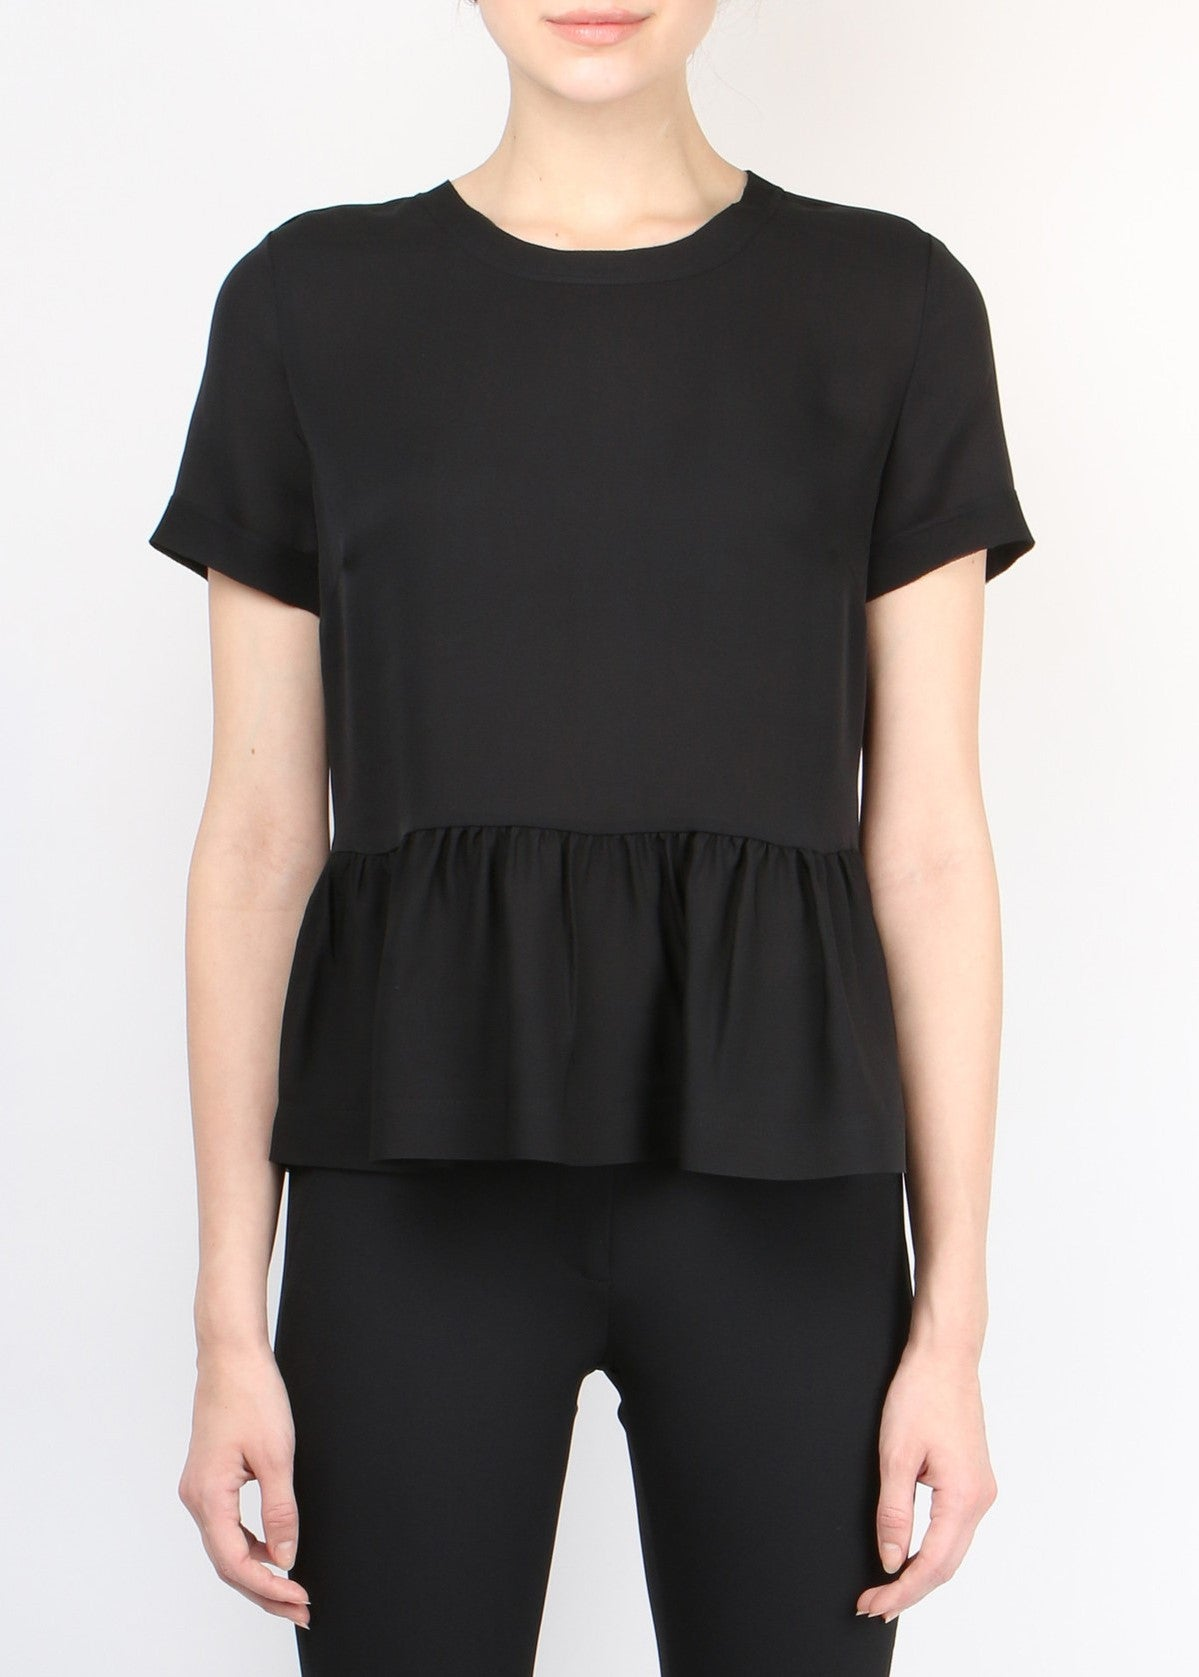 Veronica Beard silk scoop neck top black